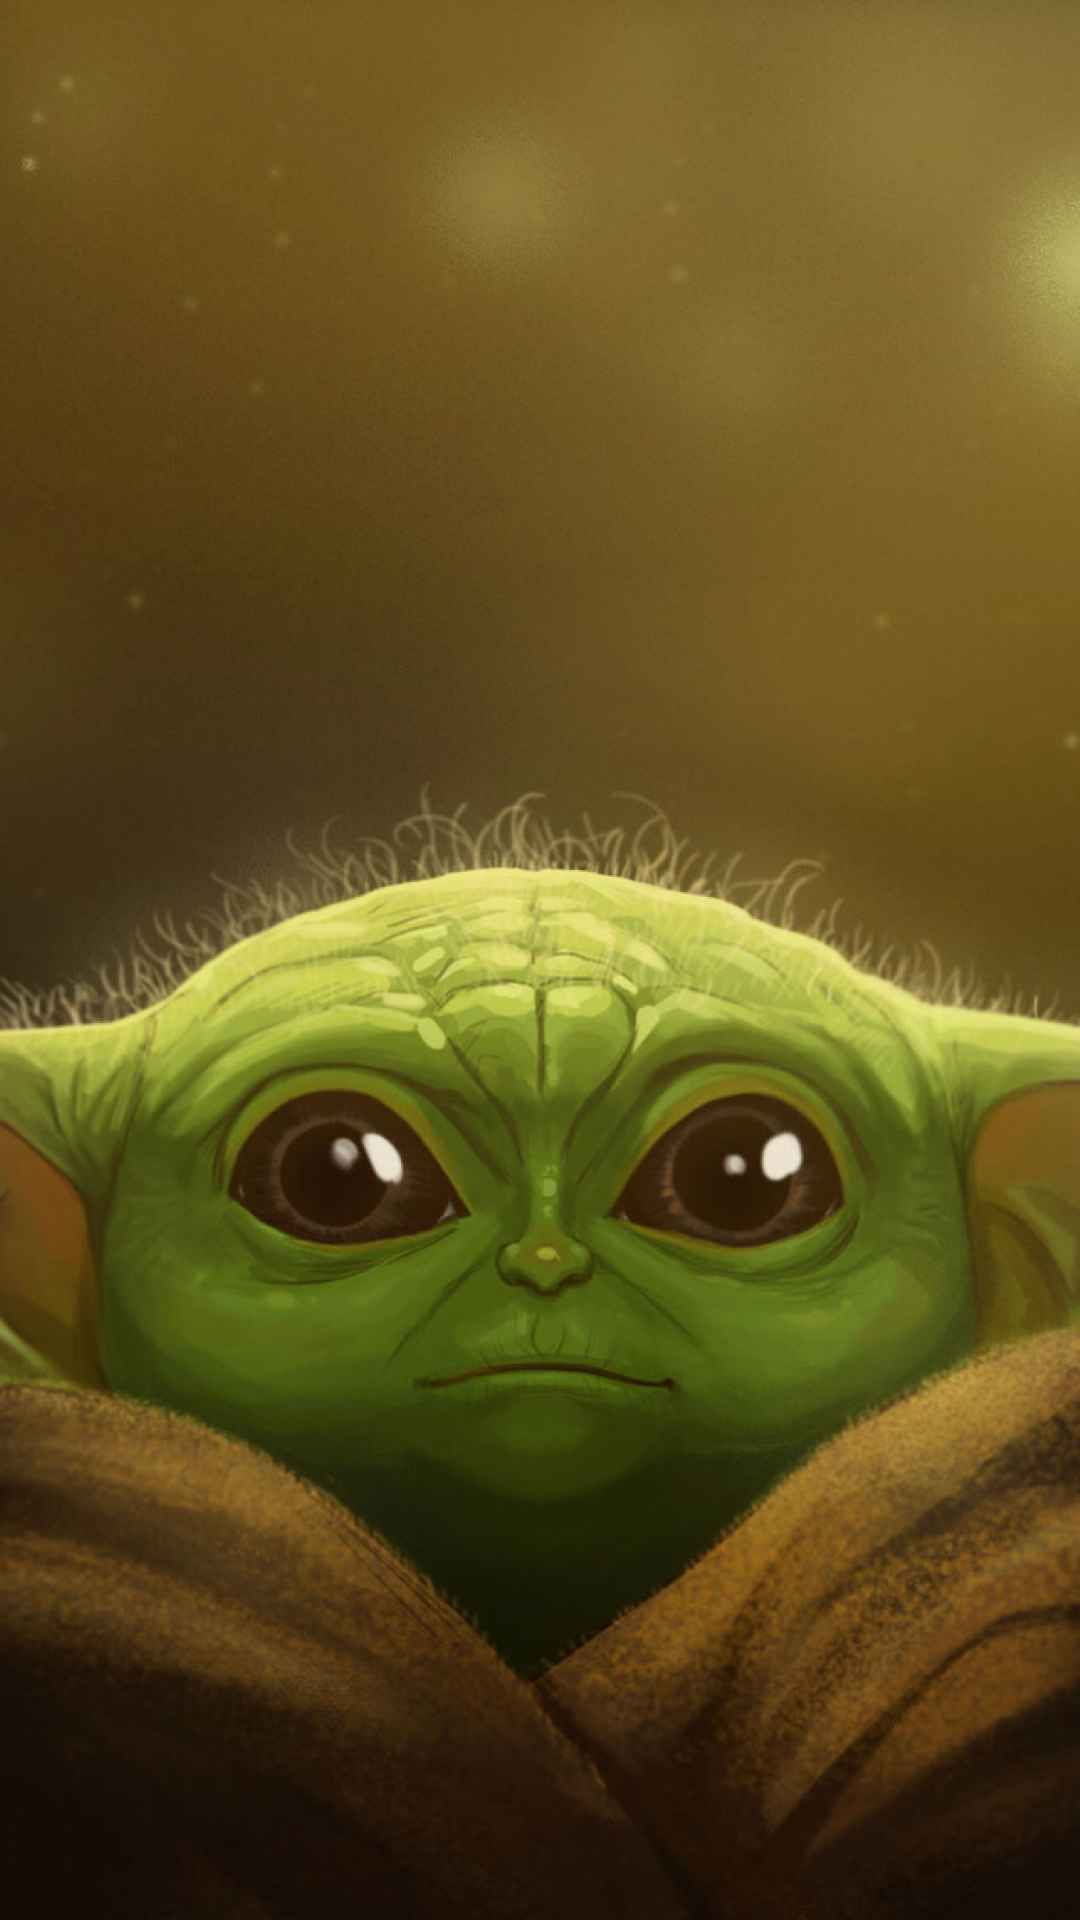 1080x1920 Baby Yoda FanArt 2019 Iphone 7, 6s, 6 Plus and ...